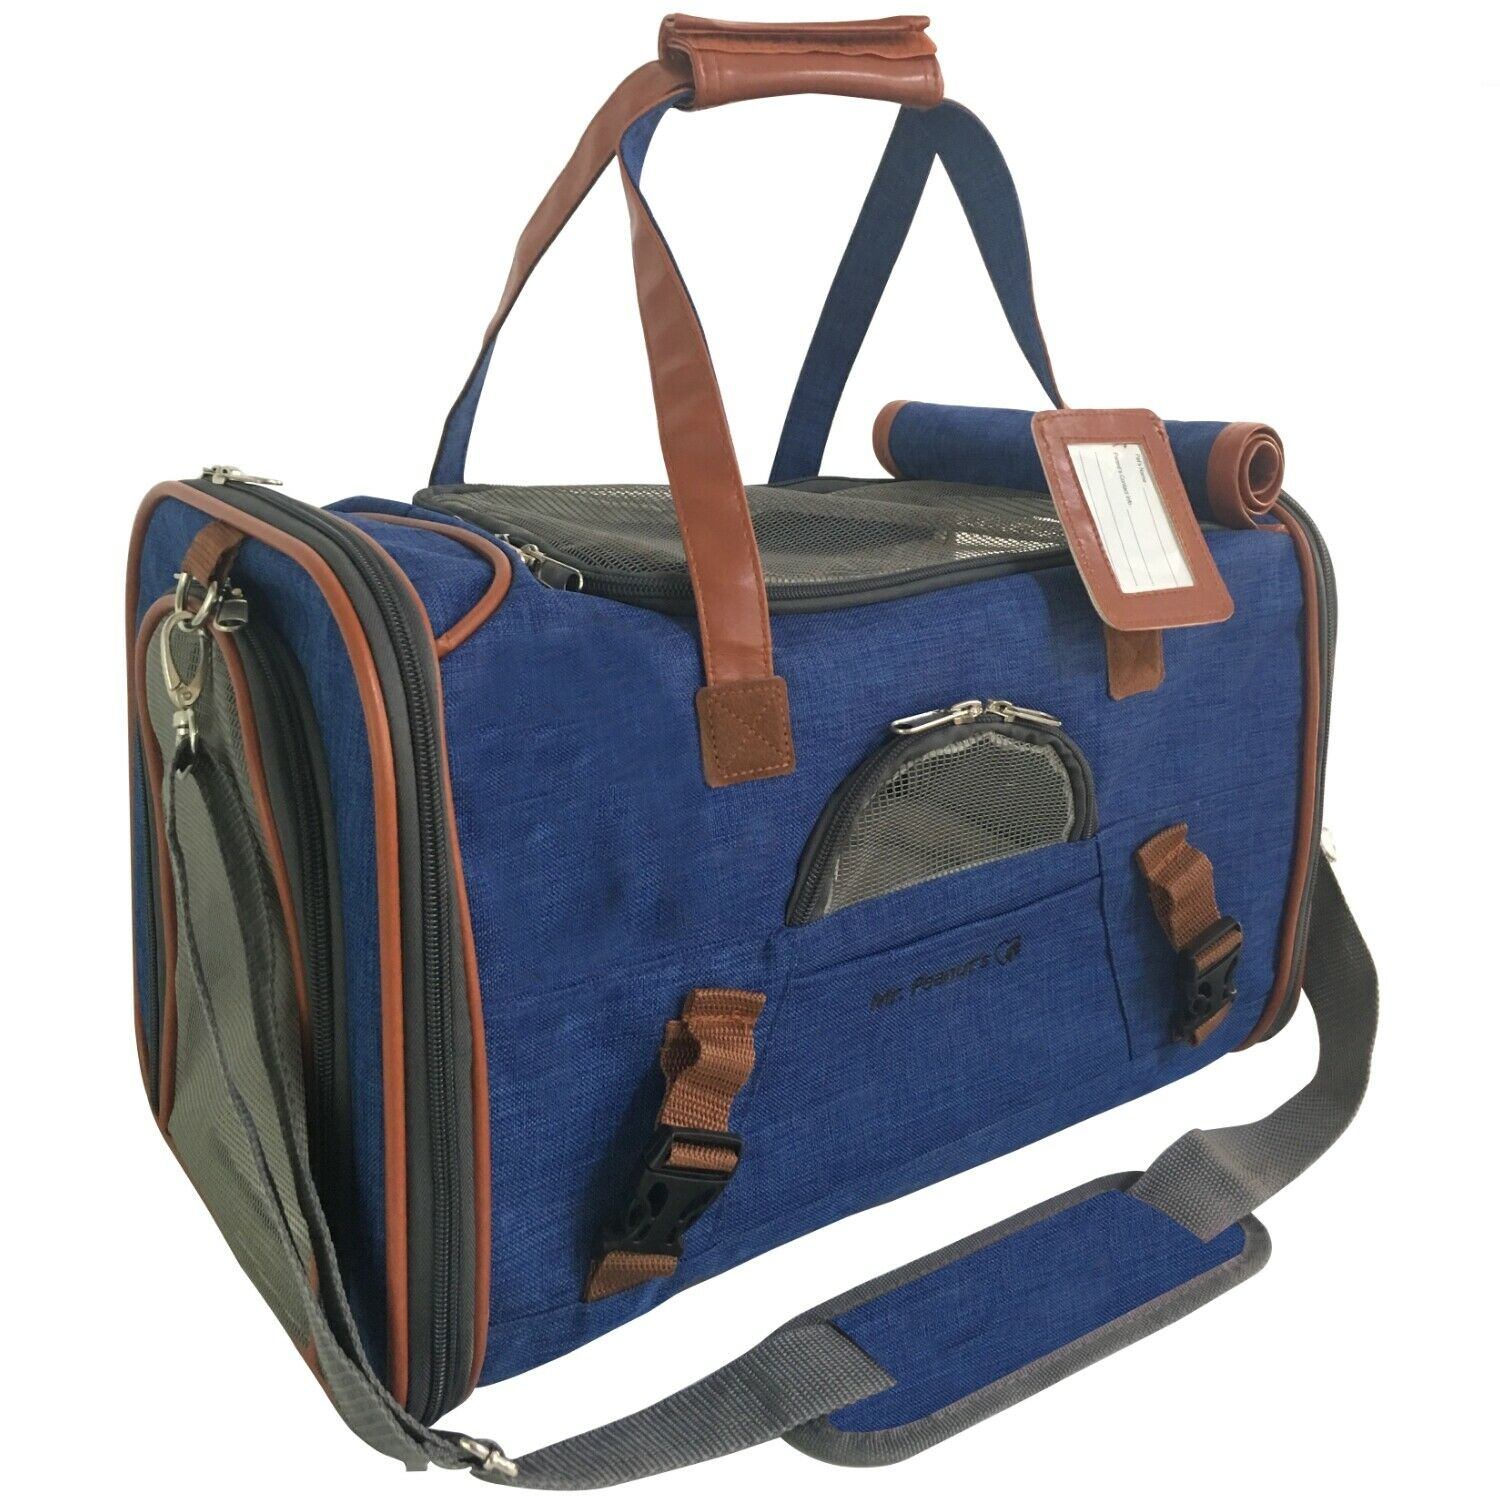 Airline Approved Soft Sided Pet Carrier by Mr. Peanut's, Low Profile Travel Tote